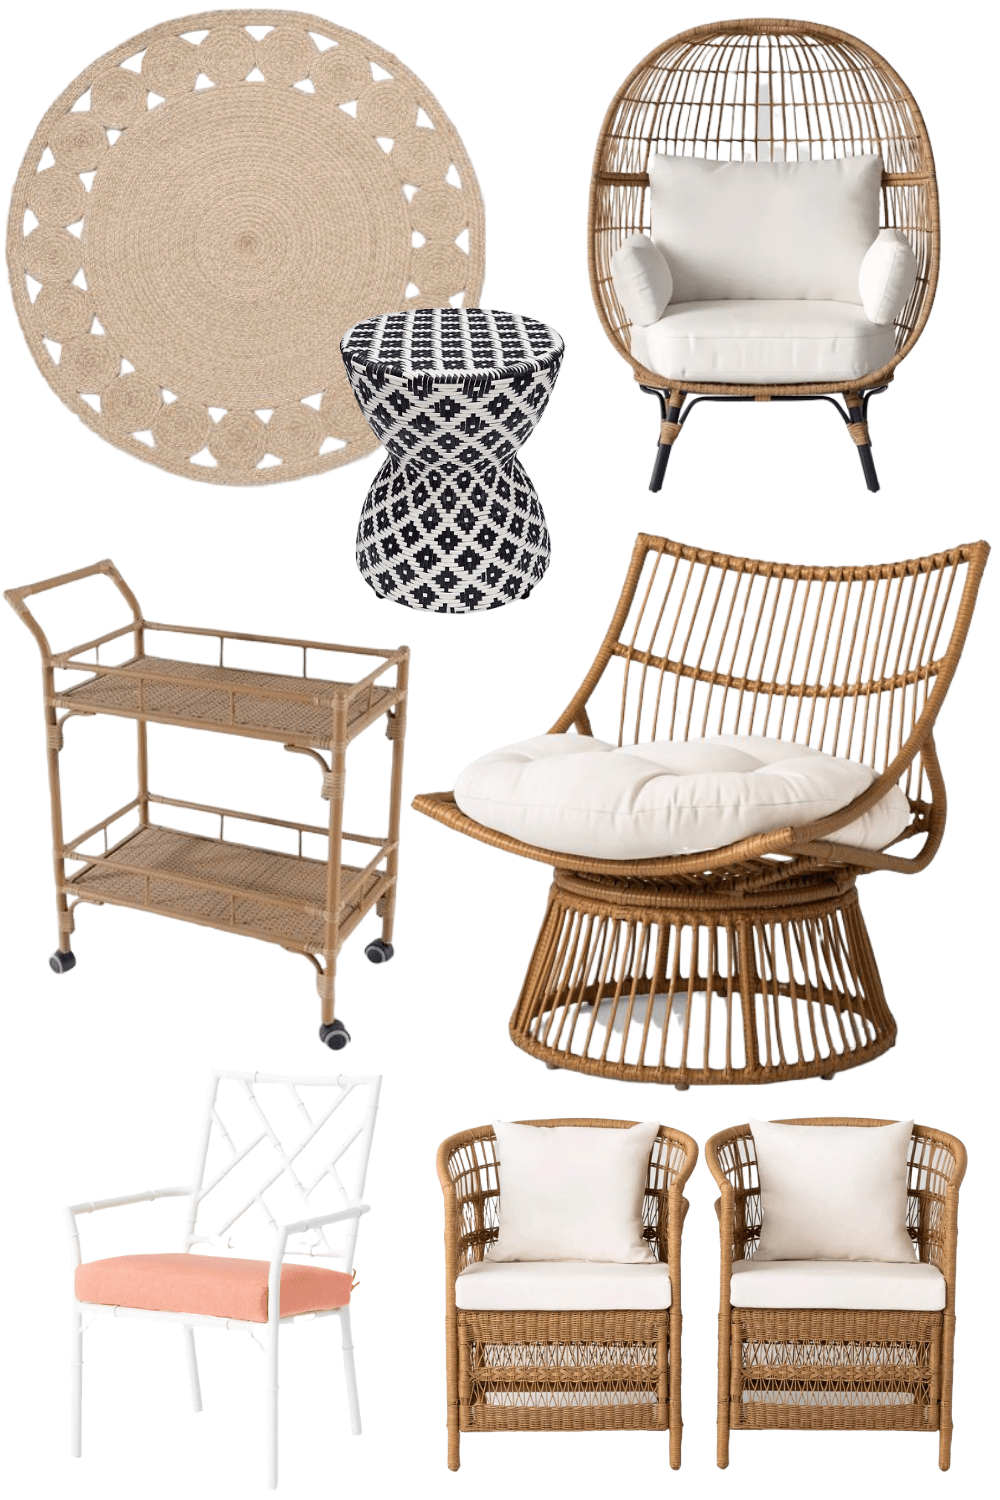 designer looks for less for the patio